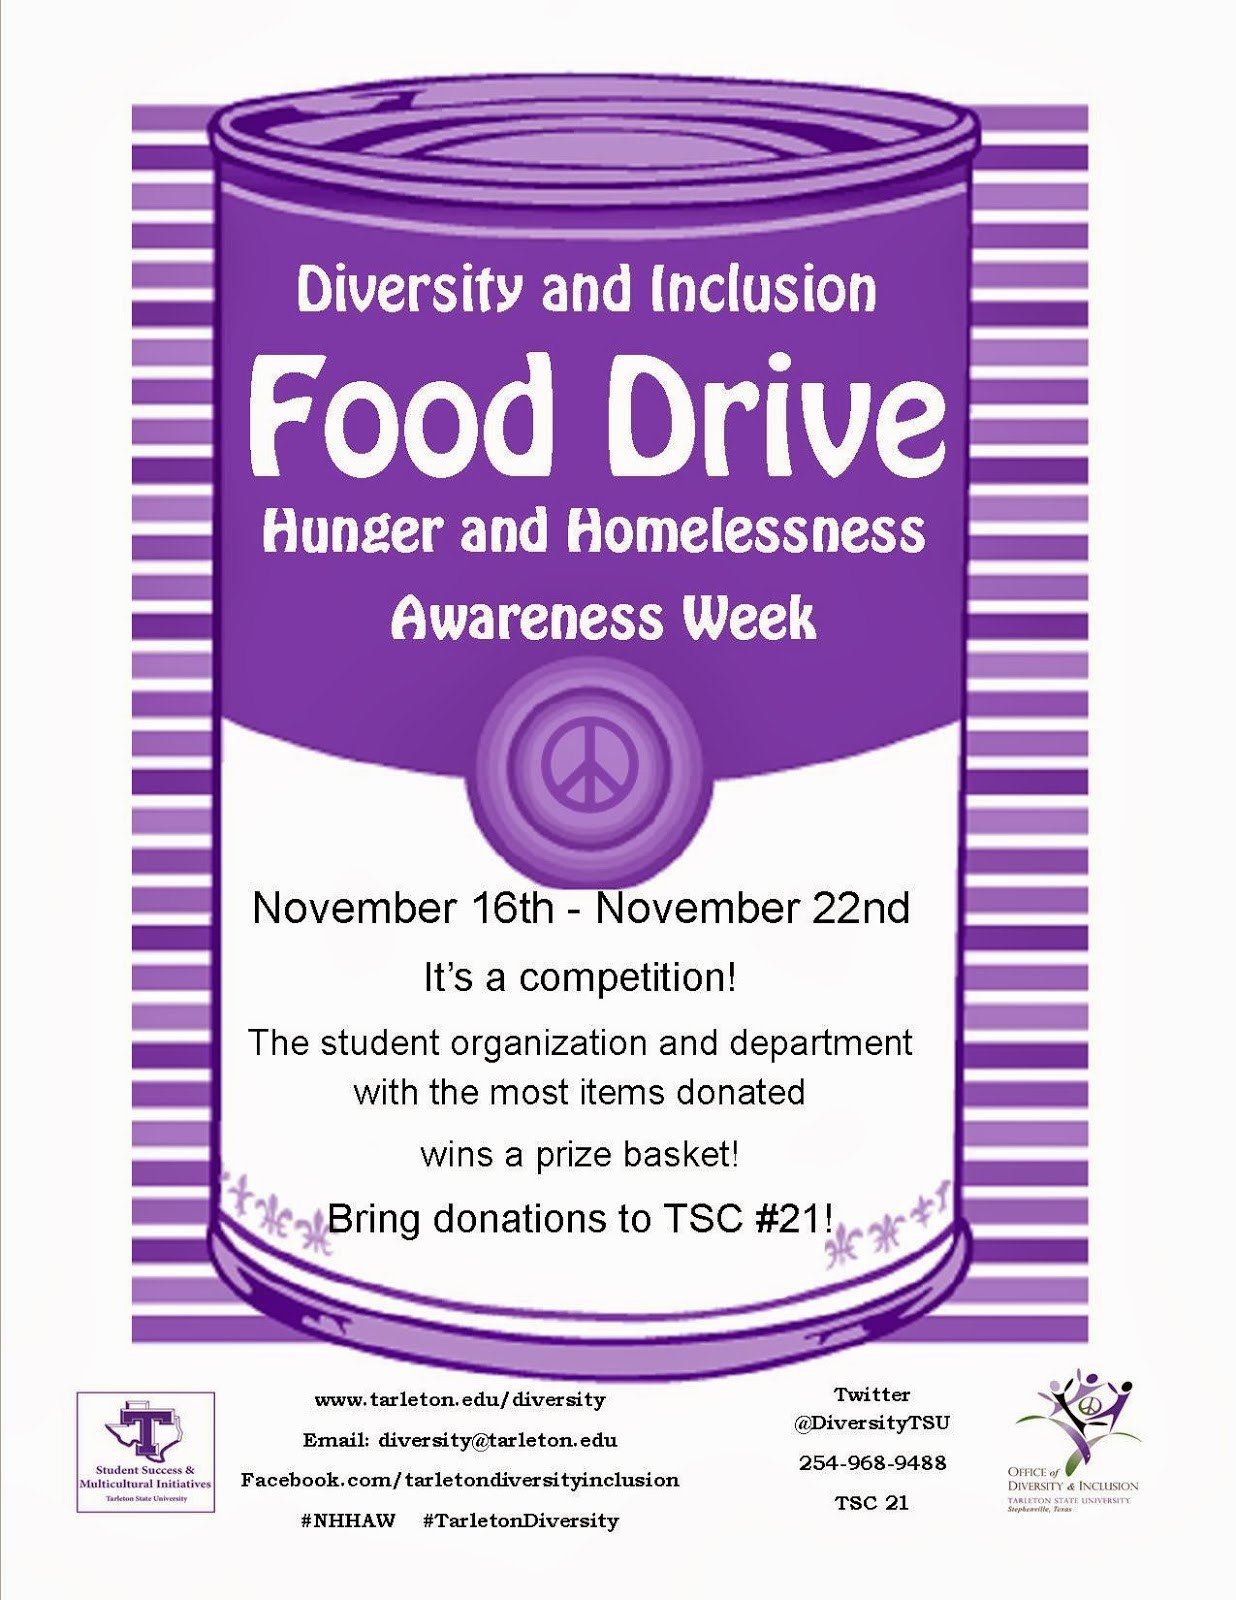 Canned Food Drive Flyer Template Diversity and Inclusion Tarleton State University